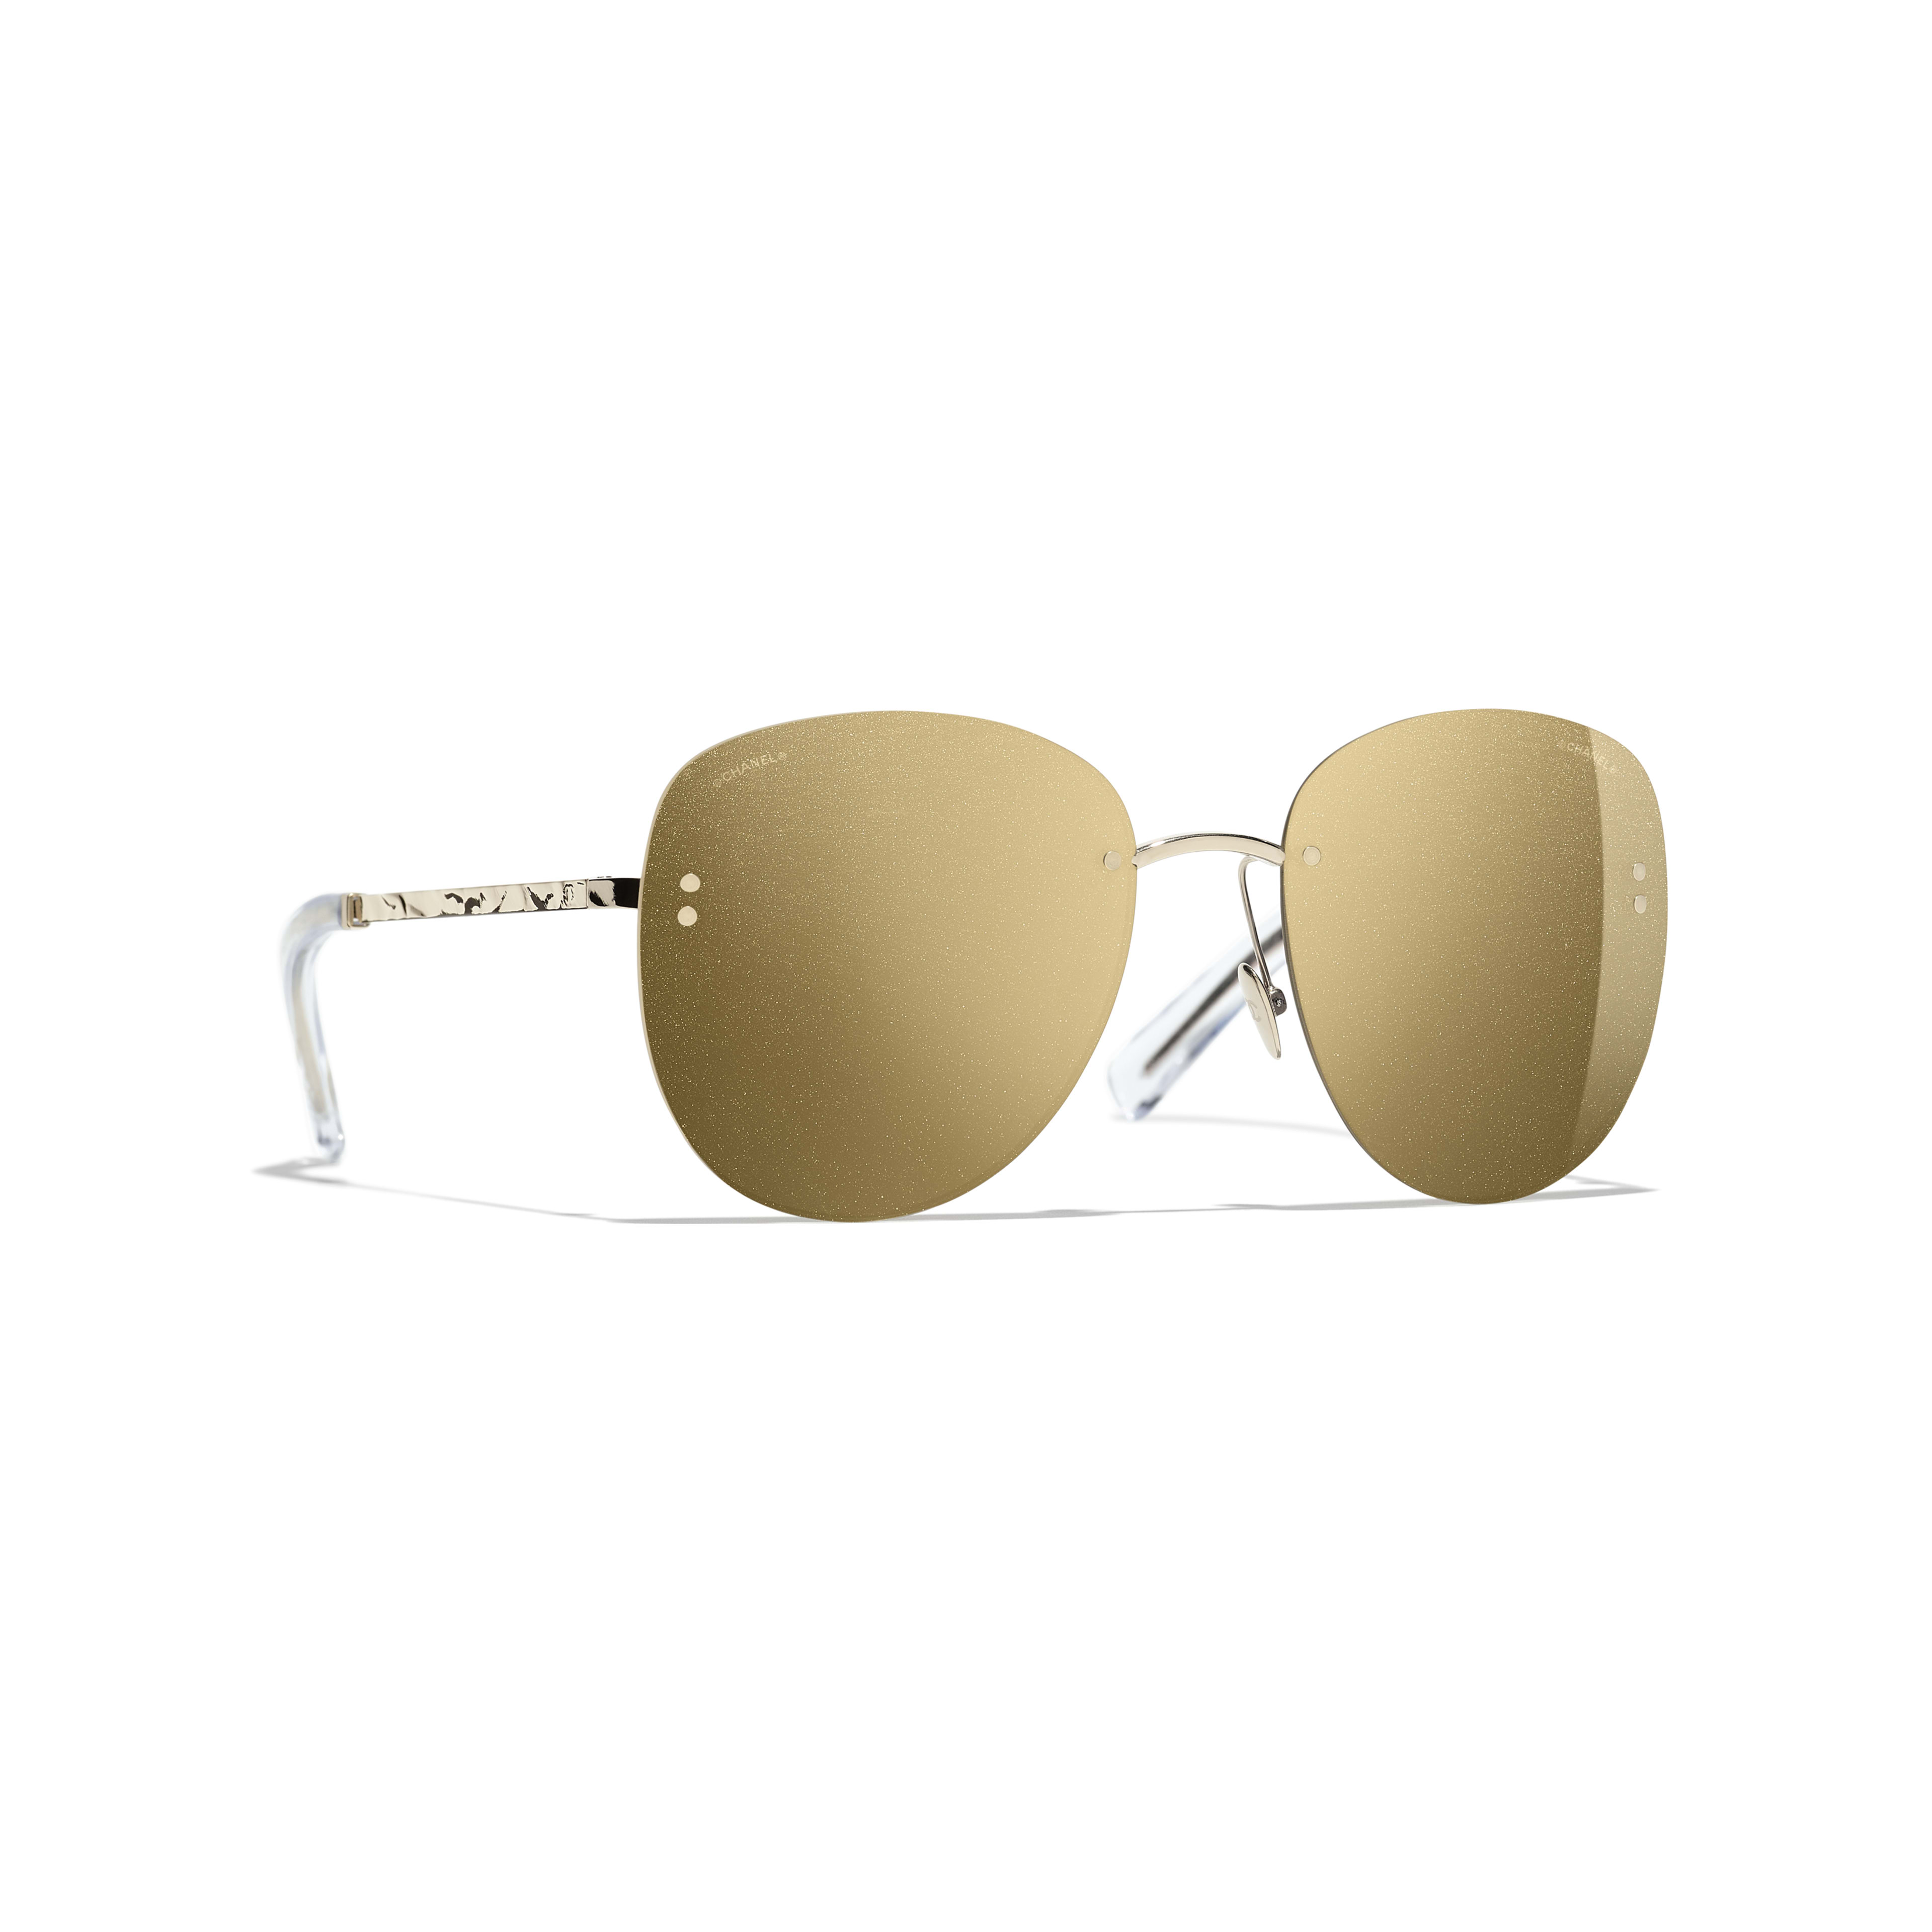 Pilot Sunglasses - Gold - Metal - Default view - see full sized version